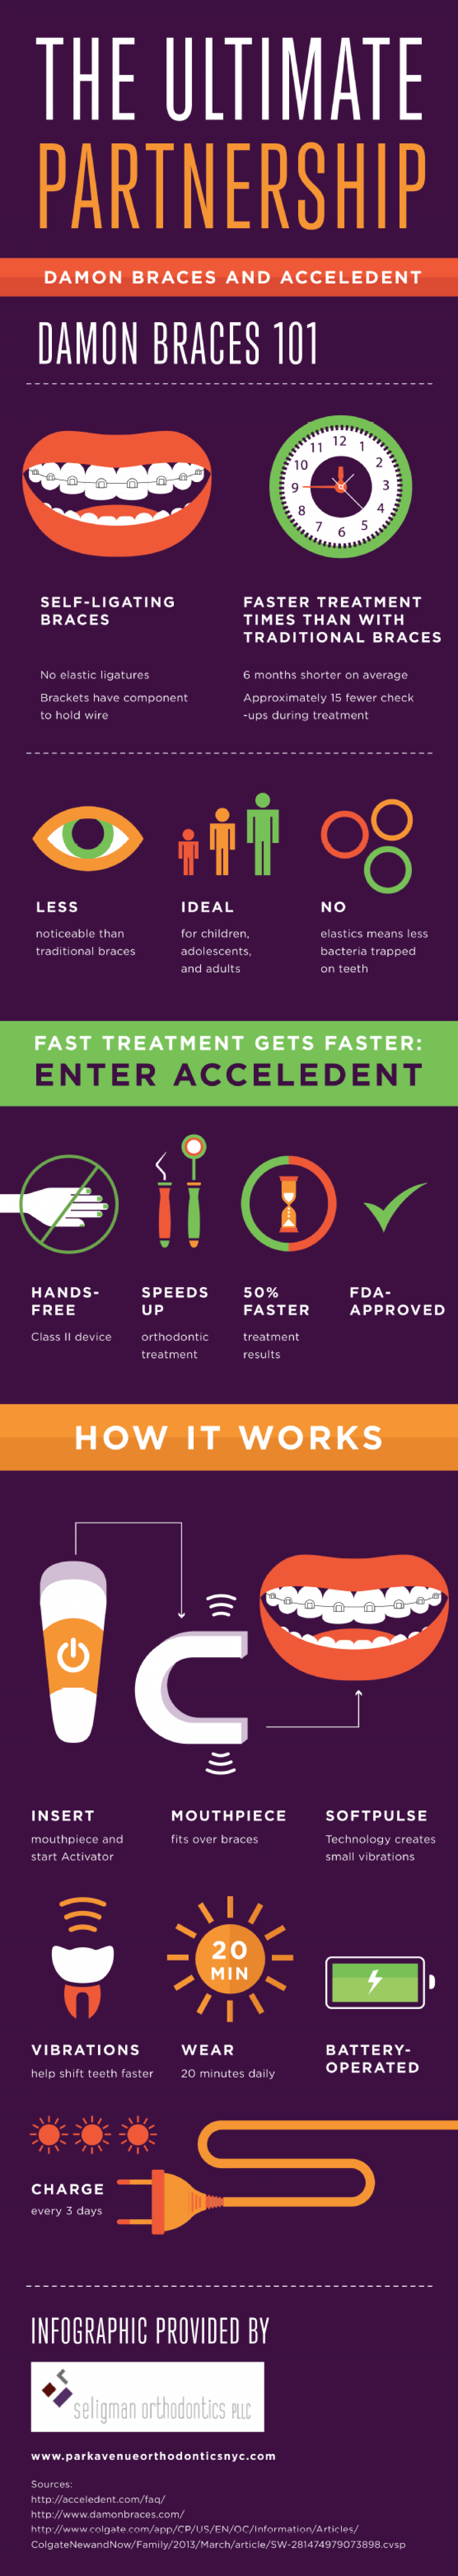 The Ultimate Partnership: Damon Braces and AcceleDent  Infographic